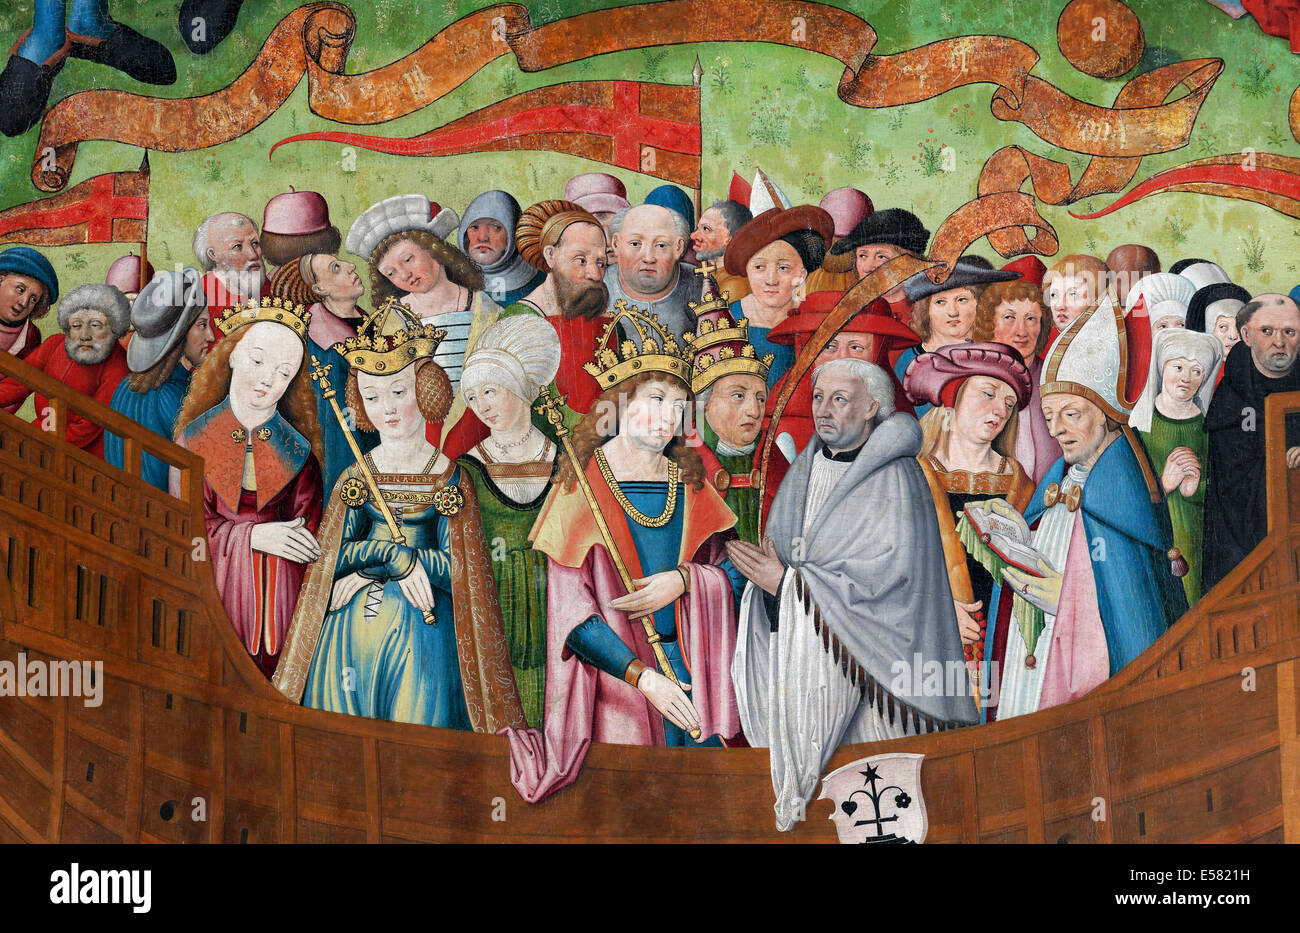 People of all classes of the middle ages gathered on board of a ship, painting on the Gothic St. Nicholas altar - Stock Image